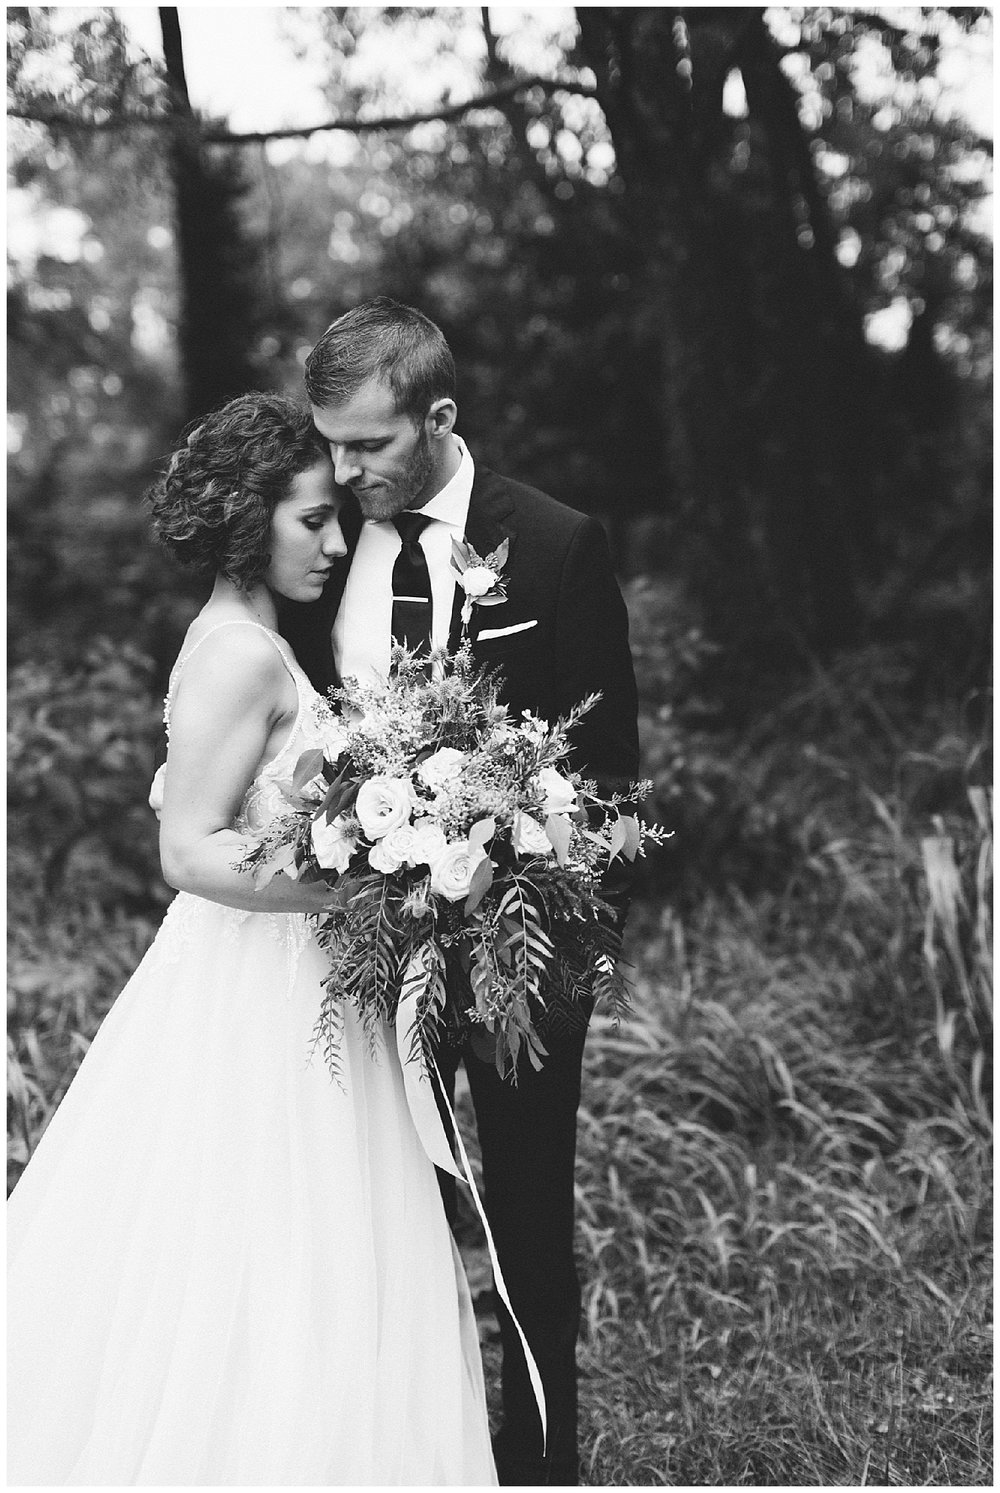 trent.and.kendra.photography.wedding.louisville-157.jpg